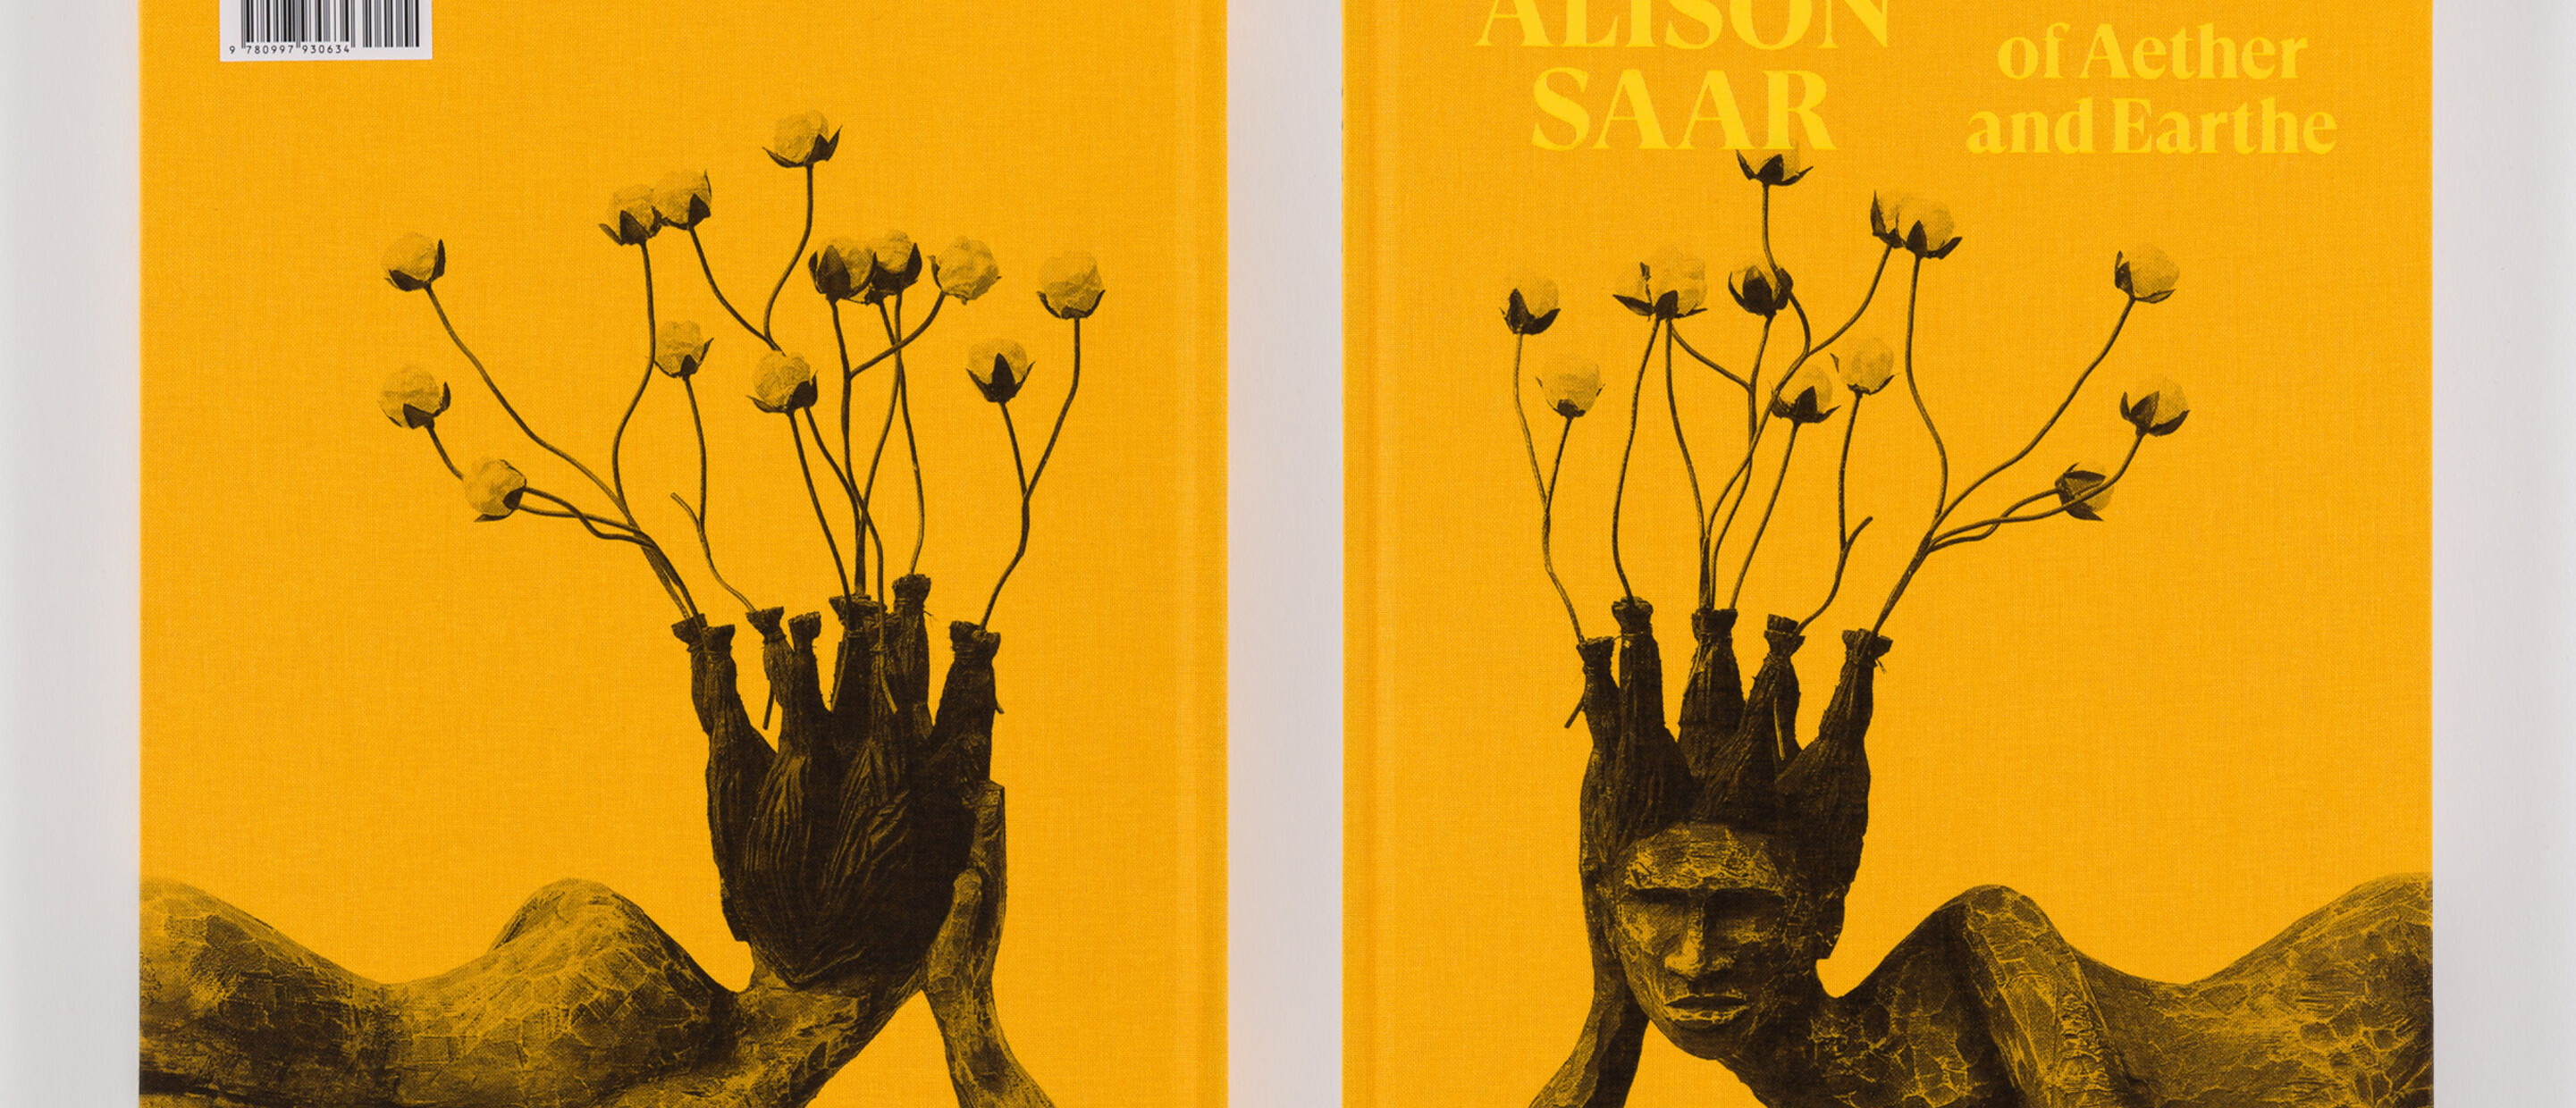 Photograph of both sides of a book titled Alison Saar: Of Aether and Earthe with image of sculpture front and back